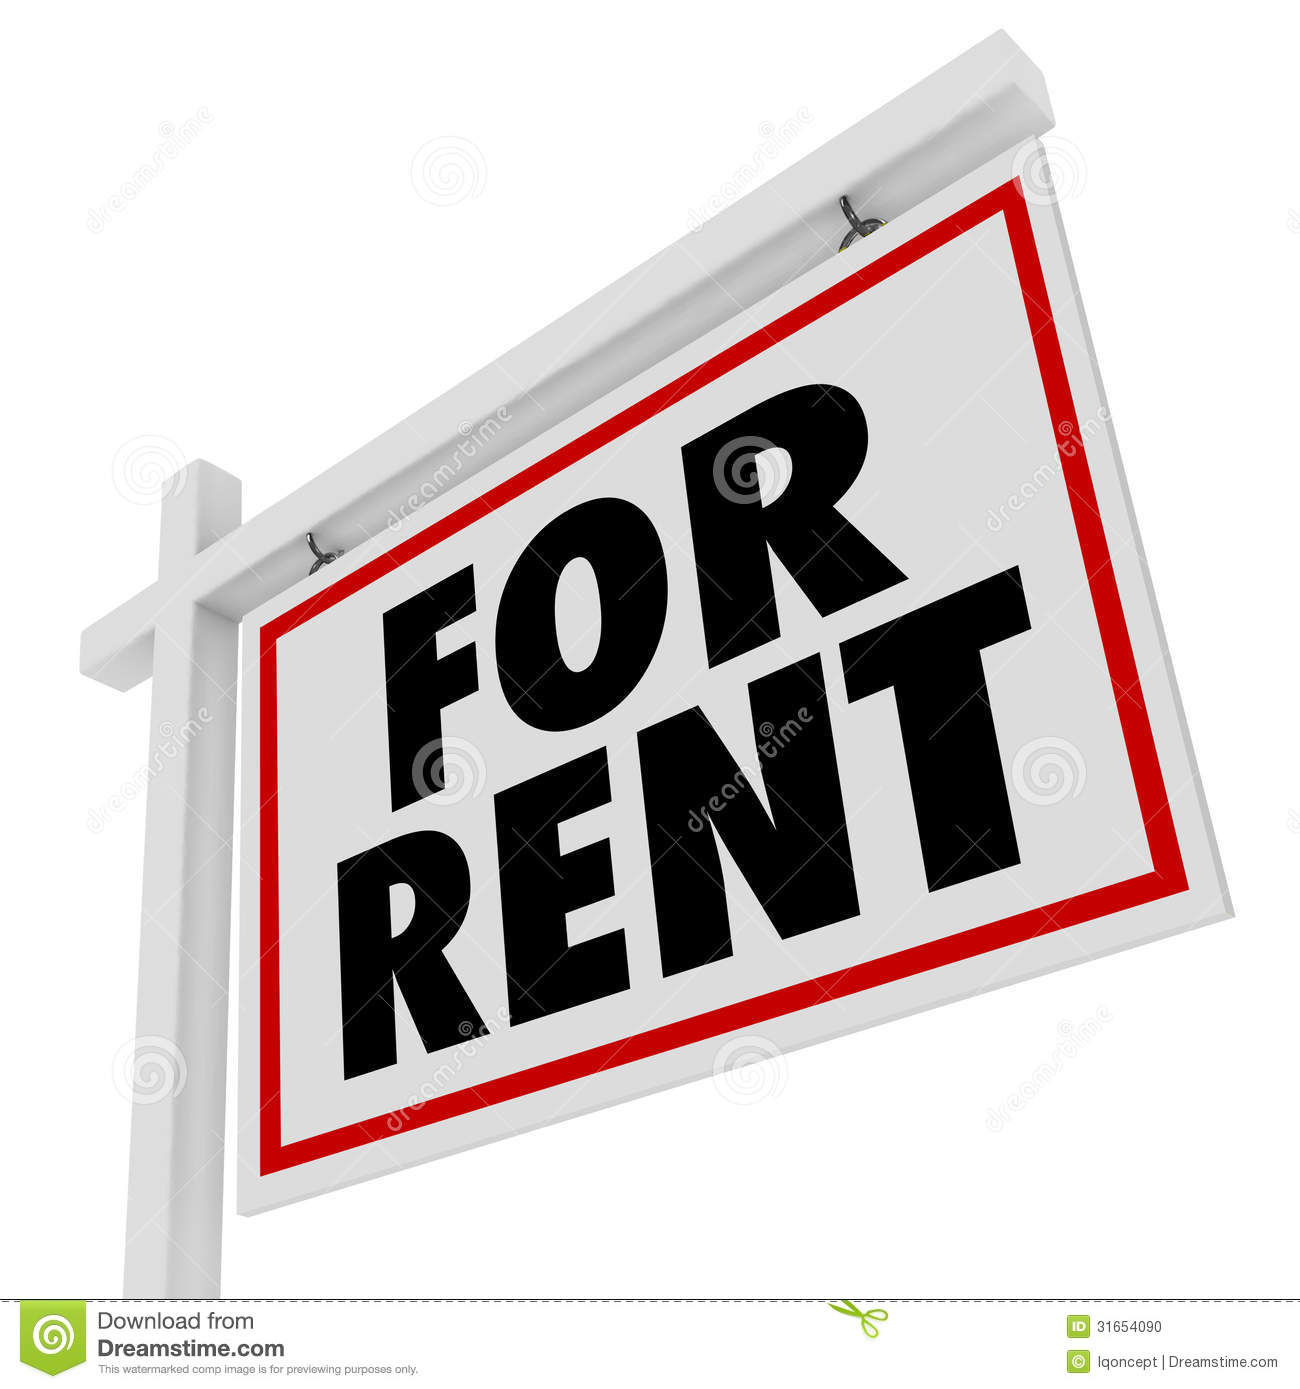 Apartment For Rent Sign: For Rent Real Estate Home Rental House Sign Stock